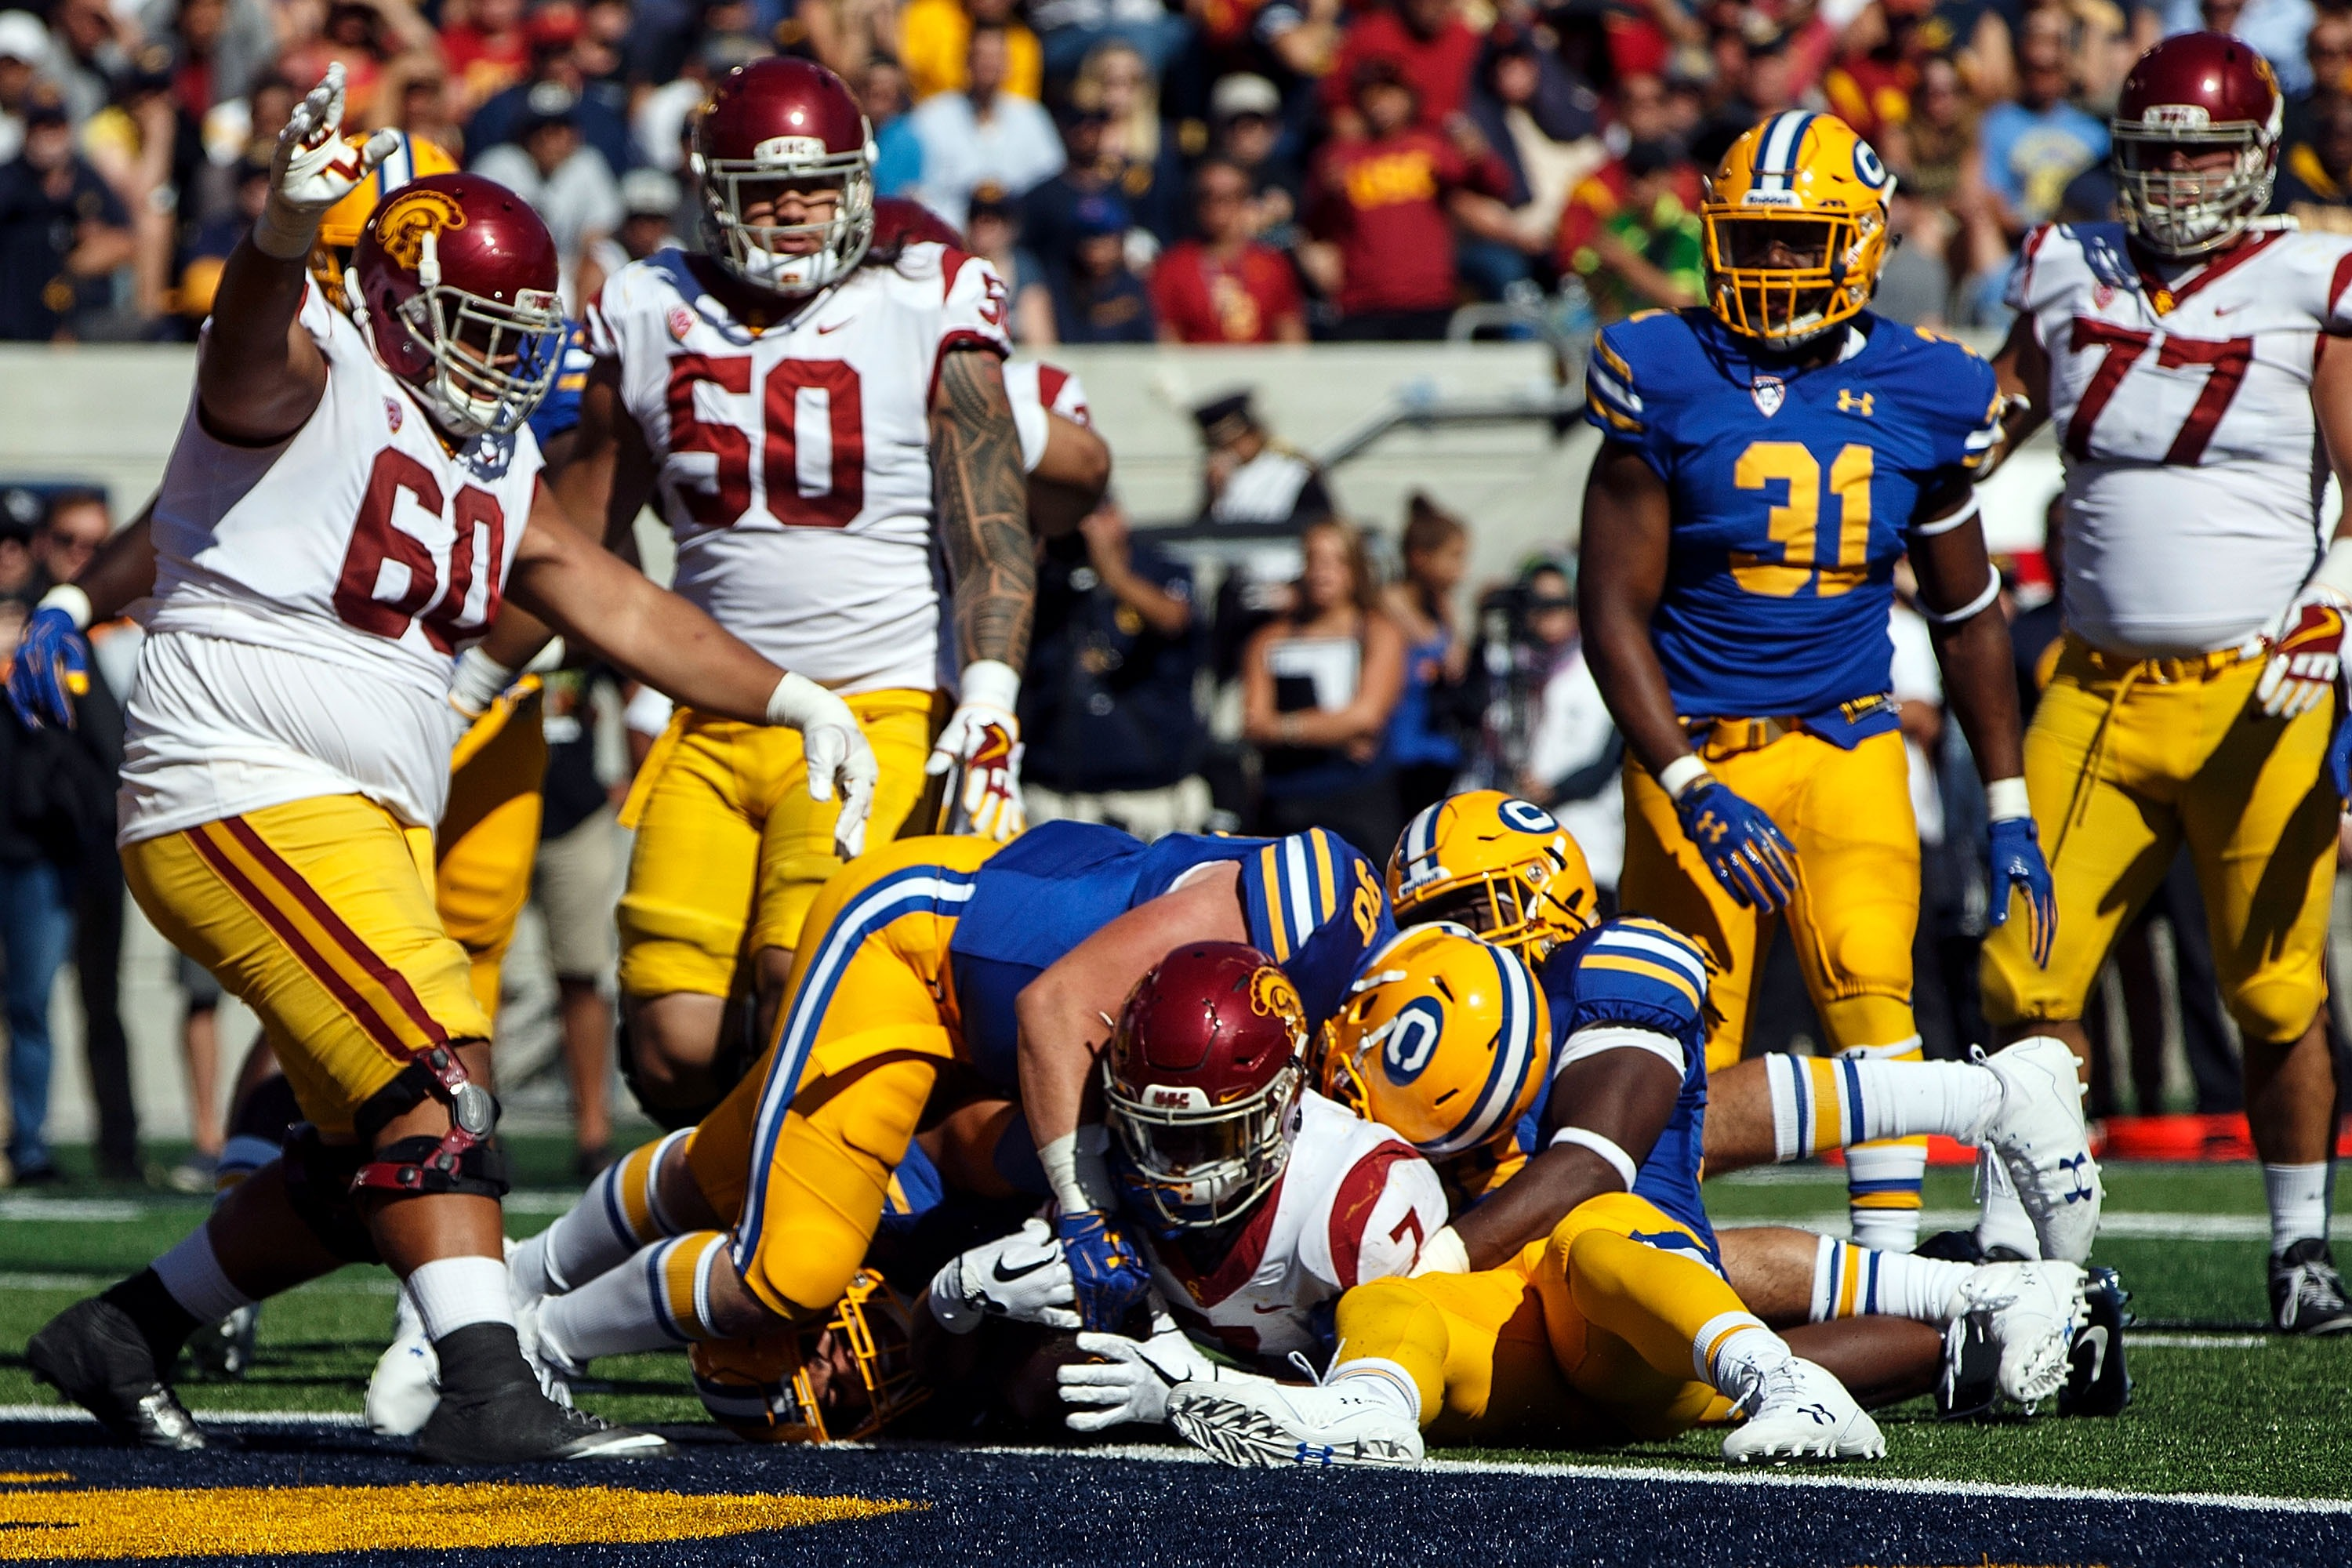 USC Trojans vs. California Golden Bears Preview and Prediction